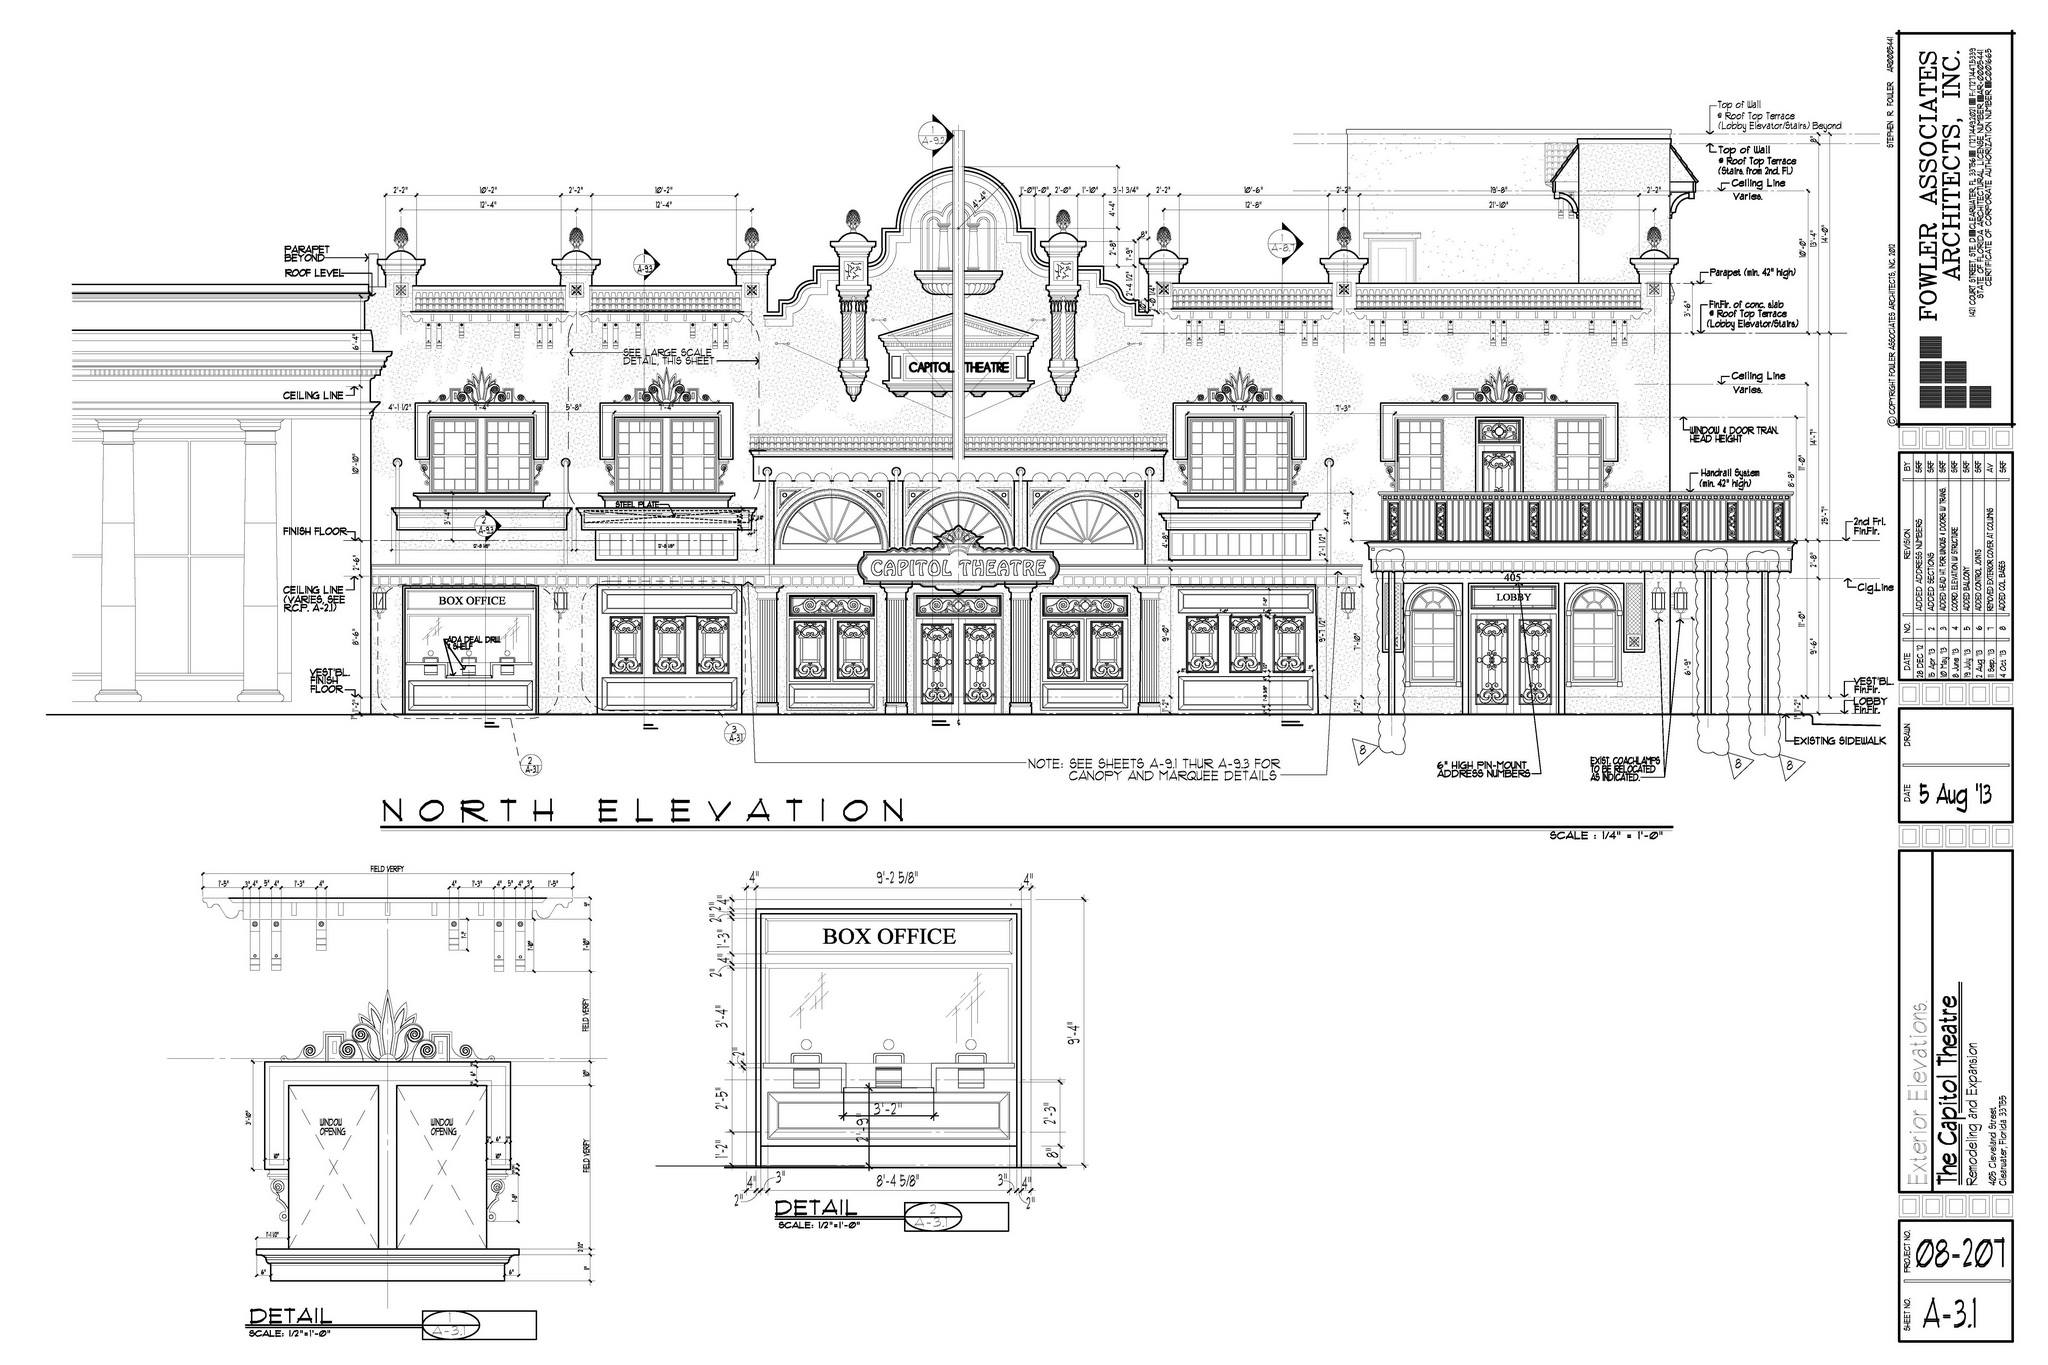 DataCAD Demo - The Capitol Theatre Remodeling and Expansion